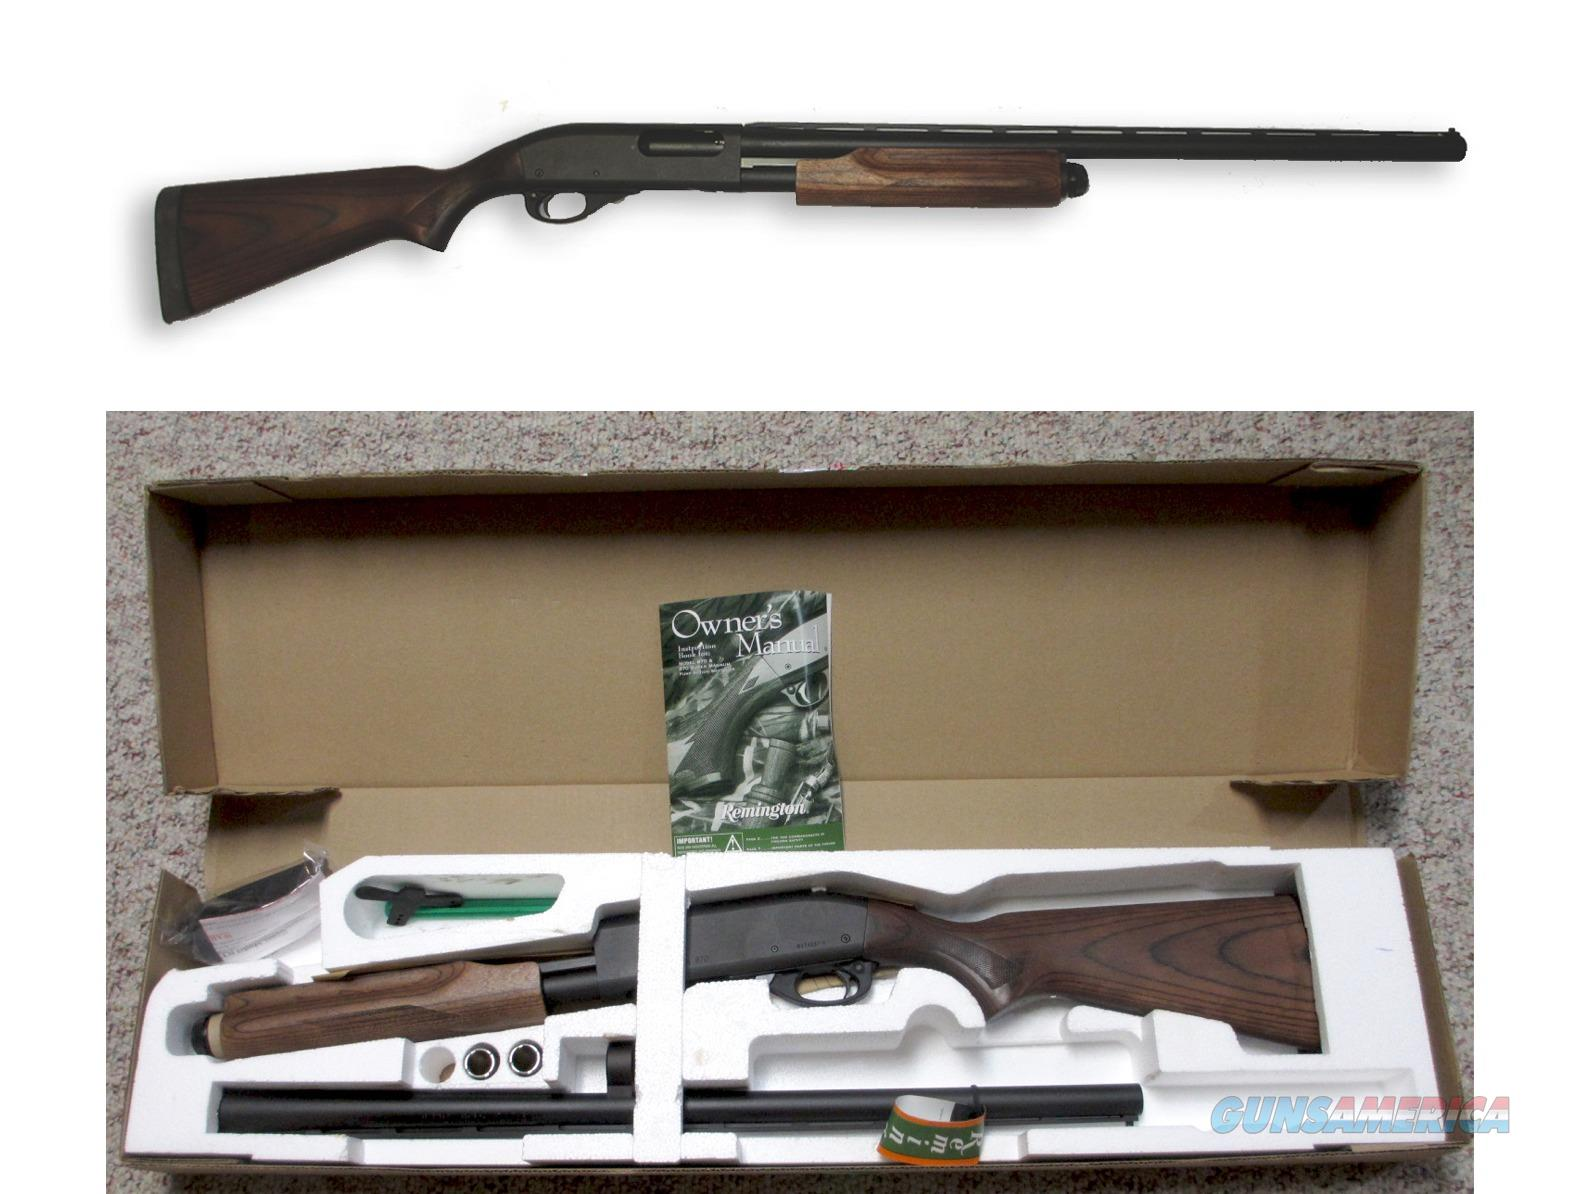 REMINGTON 870 EXPRESS LAMINATE STOCK TRU GLO SIGHT 12GA MODEL: 27040 UPC: 047700270401  Guns > Shotguns > Remington Shotguns  > Pump > Hunting